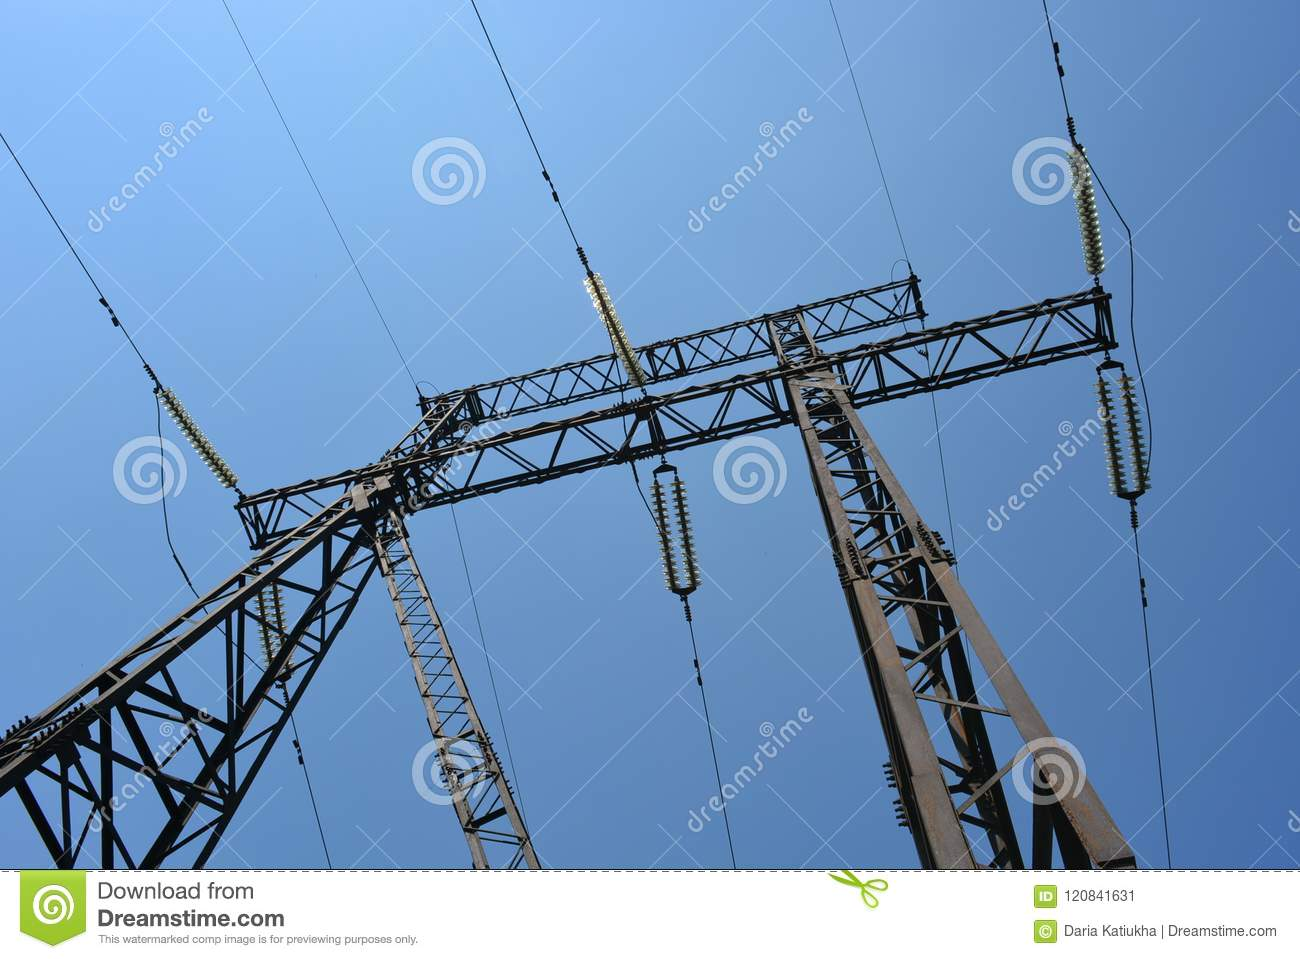 Blue Sky With Black Electrical Wires, City Electricity, Power Line ...